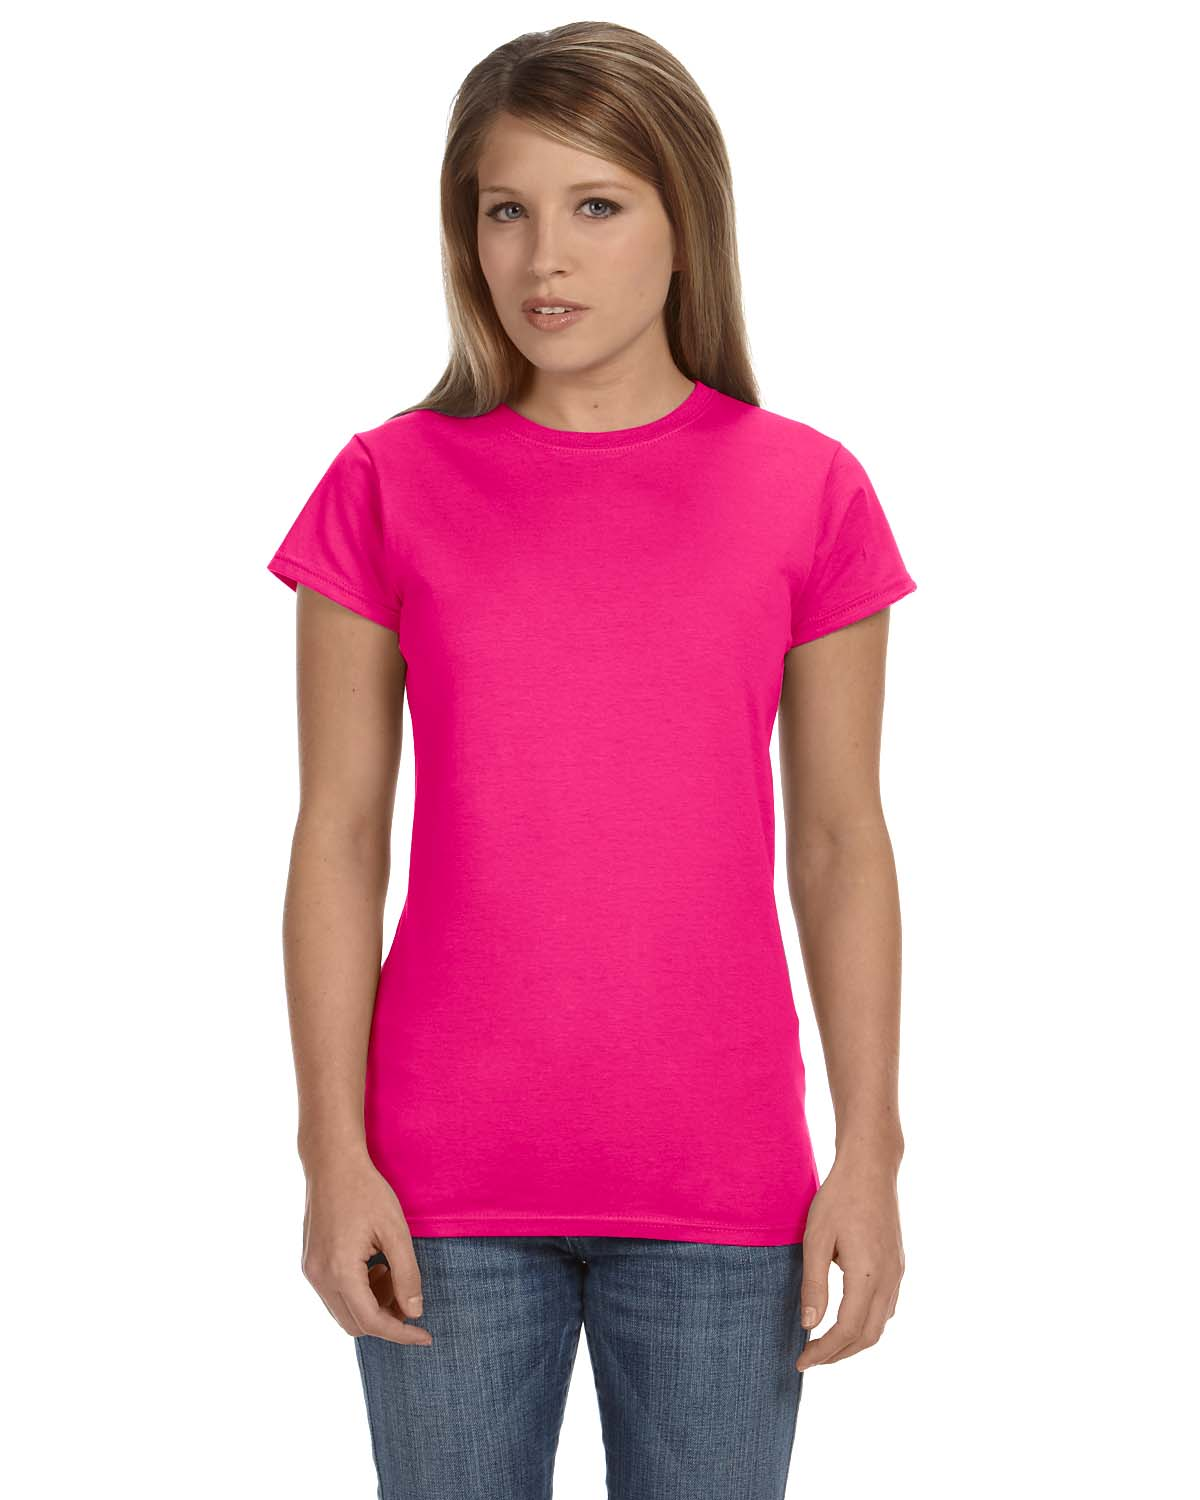 Gildan Softstyle® Ladies 4.5 Oz. Junior Fit T-Shirt